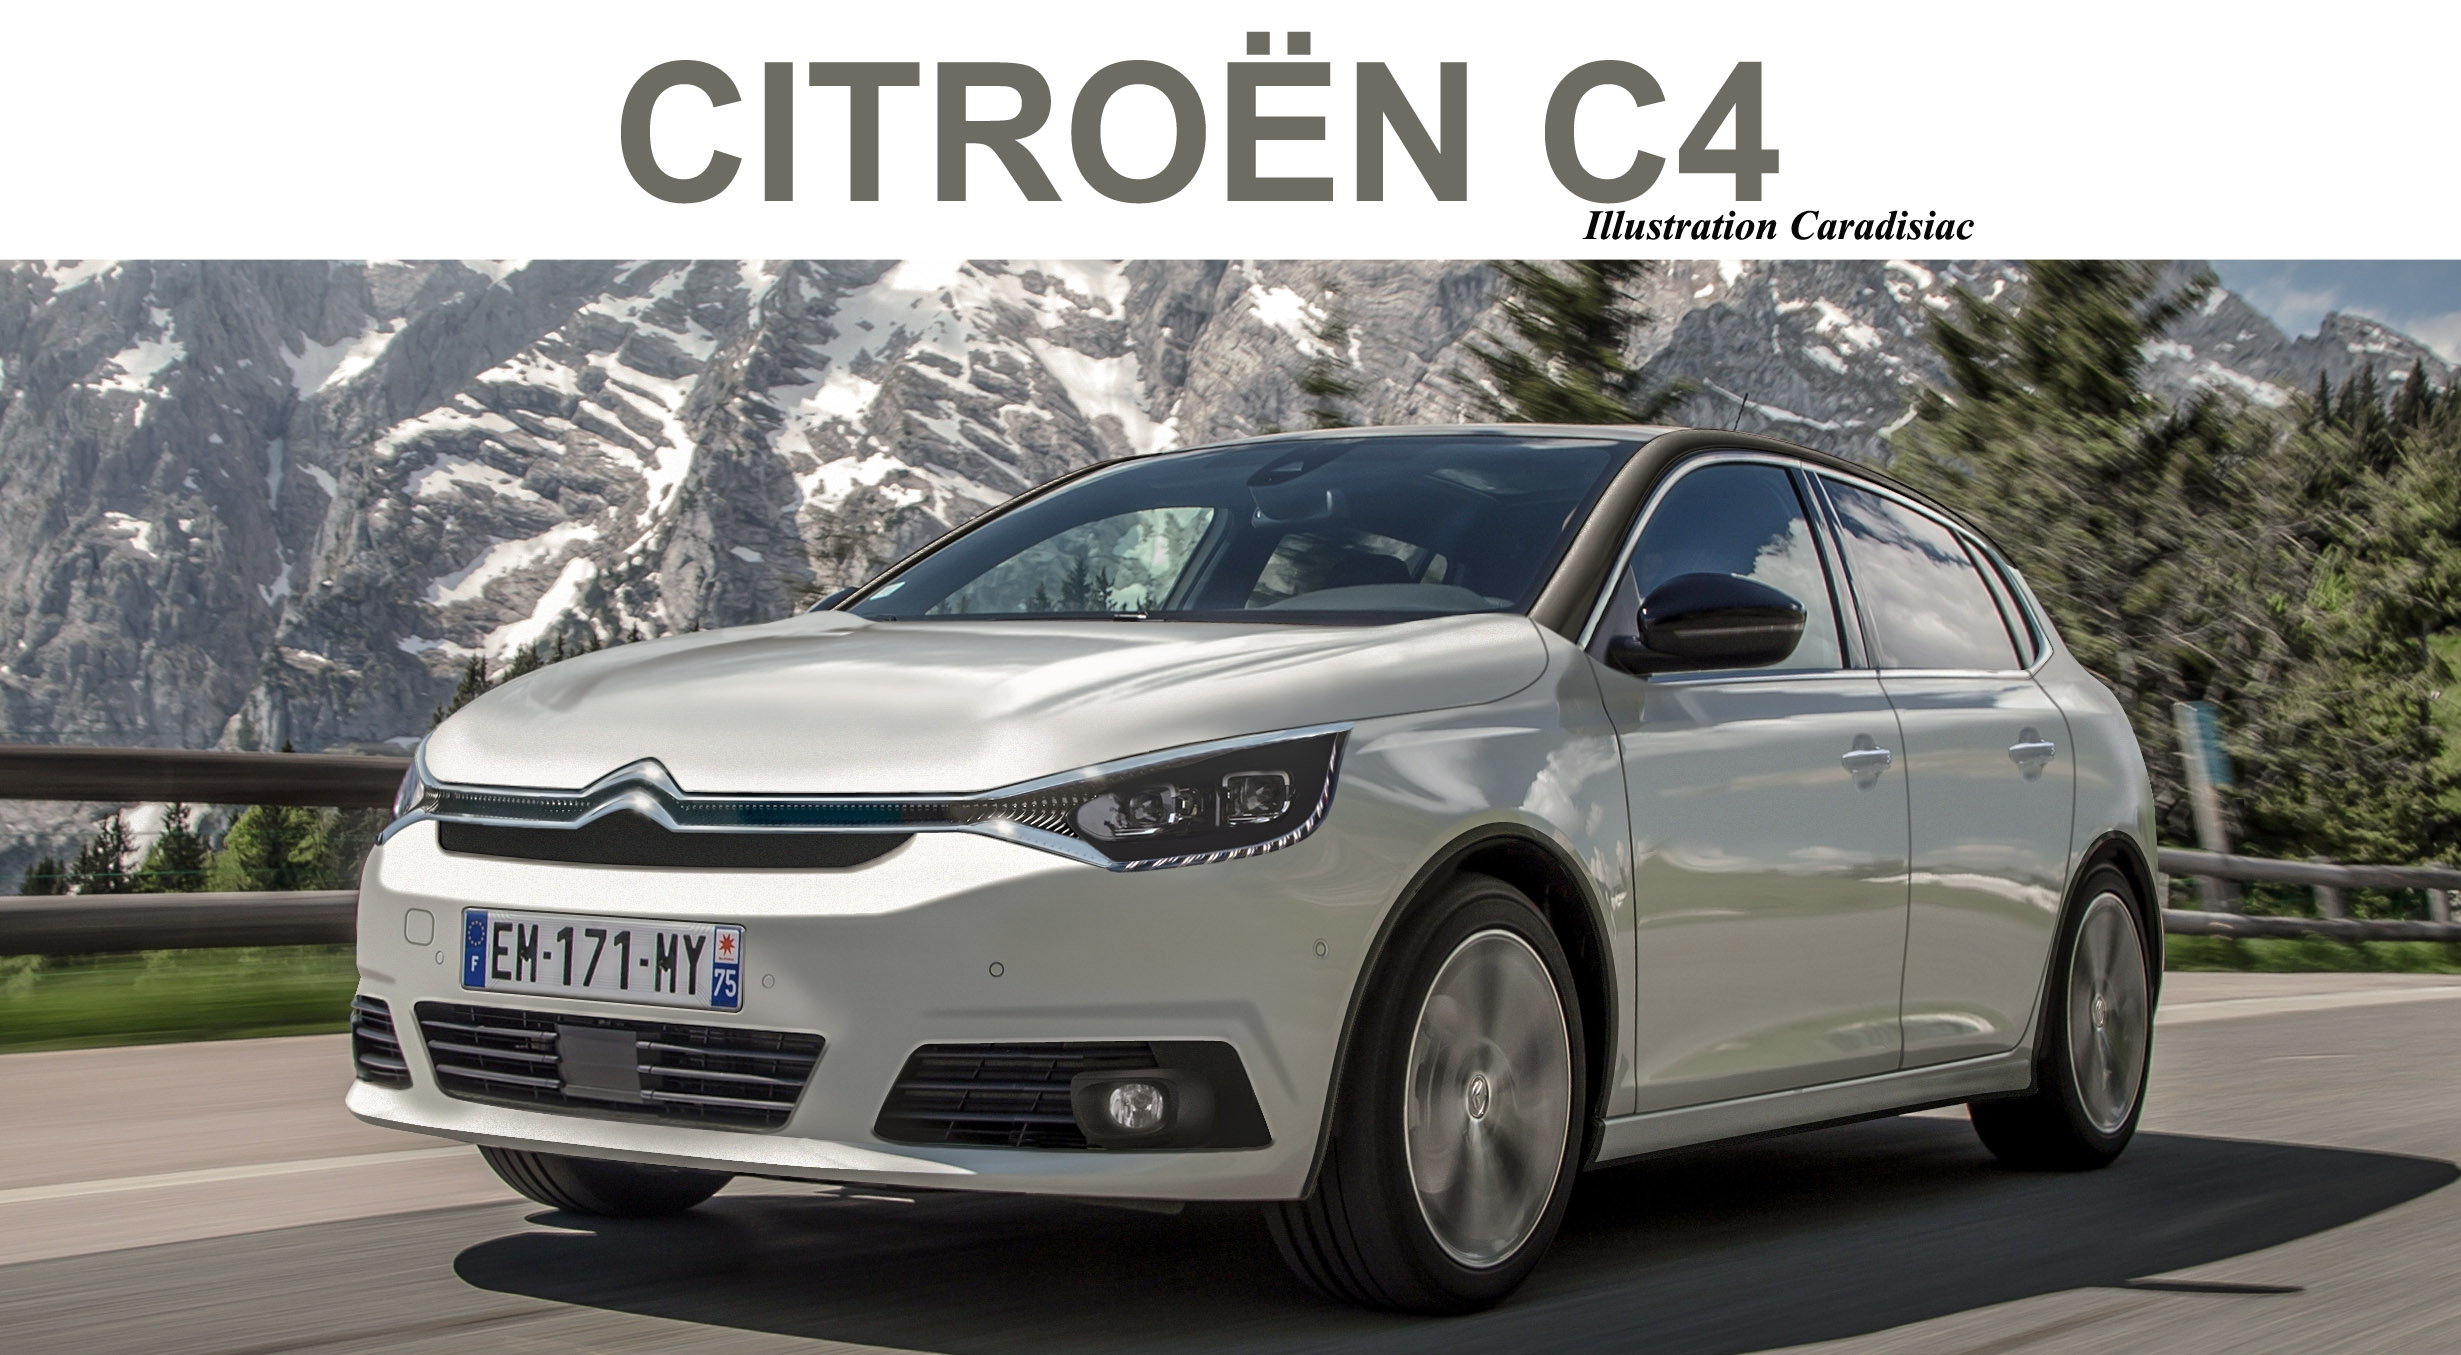 67 The Best 2020 Citroen C4 Photos